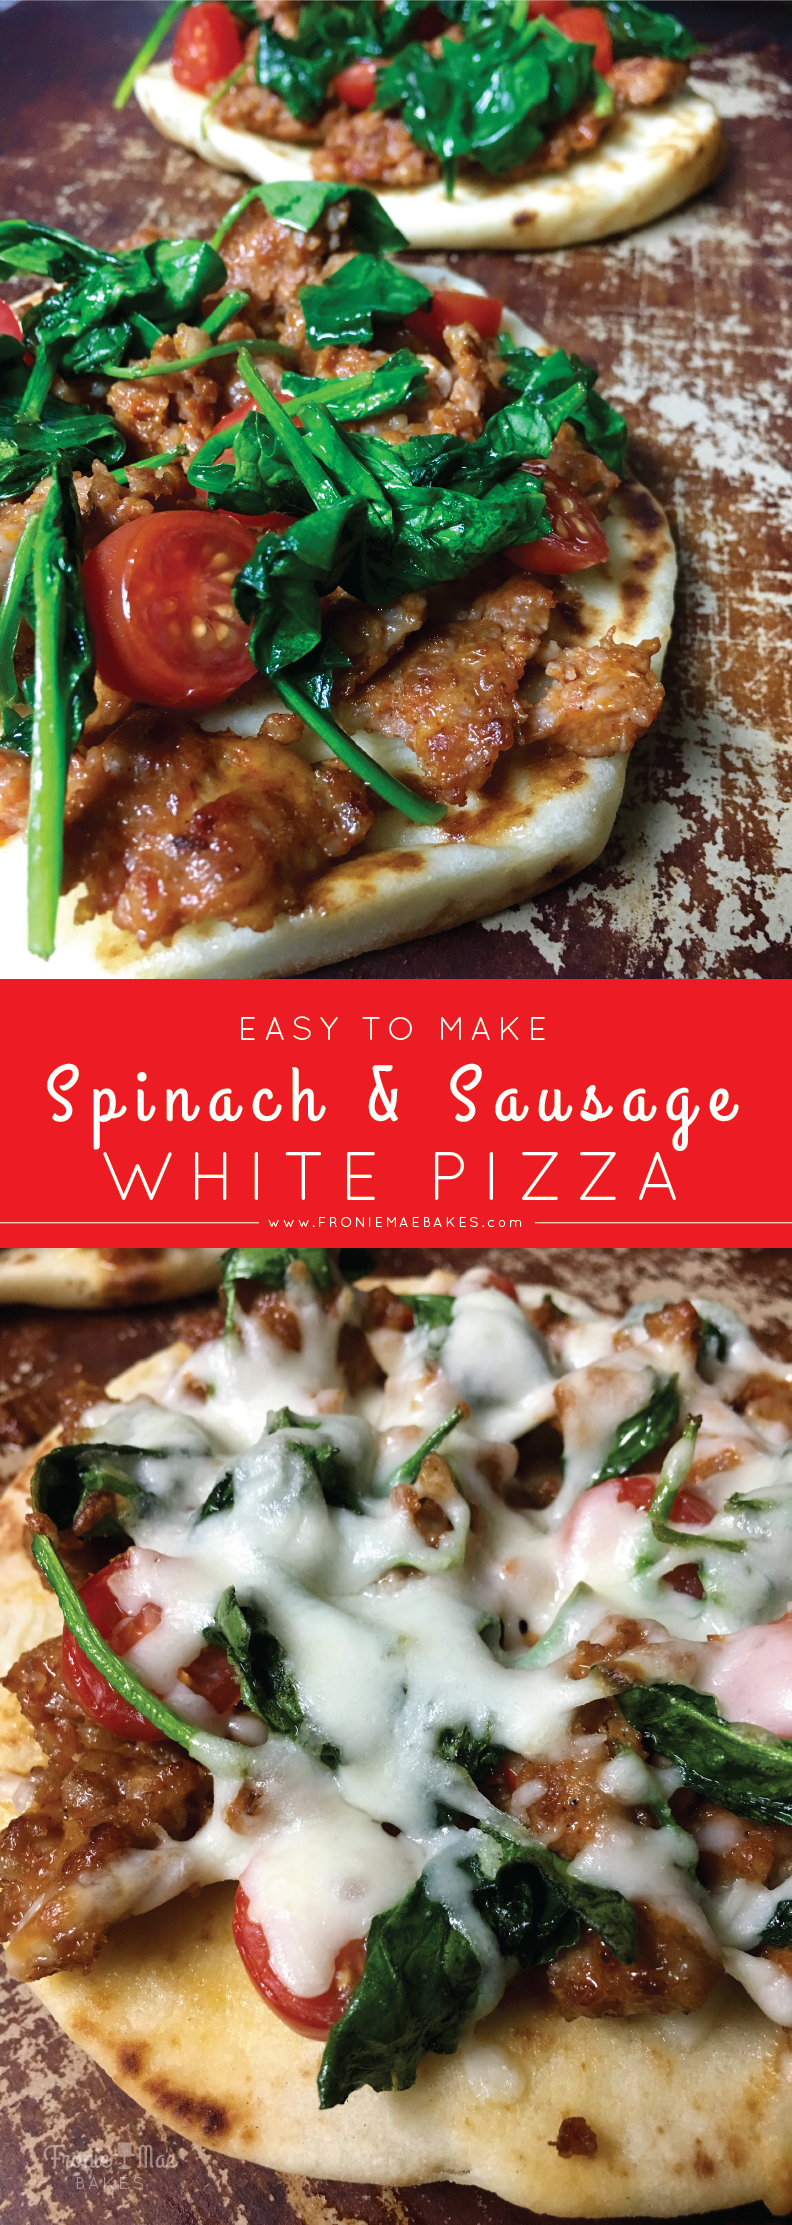 Easy To Make Spinach and Sausage White Pizza by Fronie Mae Bakes. www.froniemaebakes.com